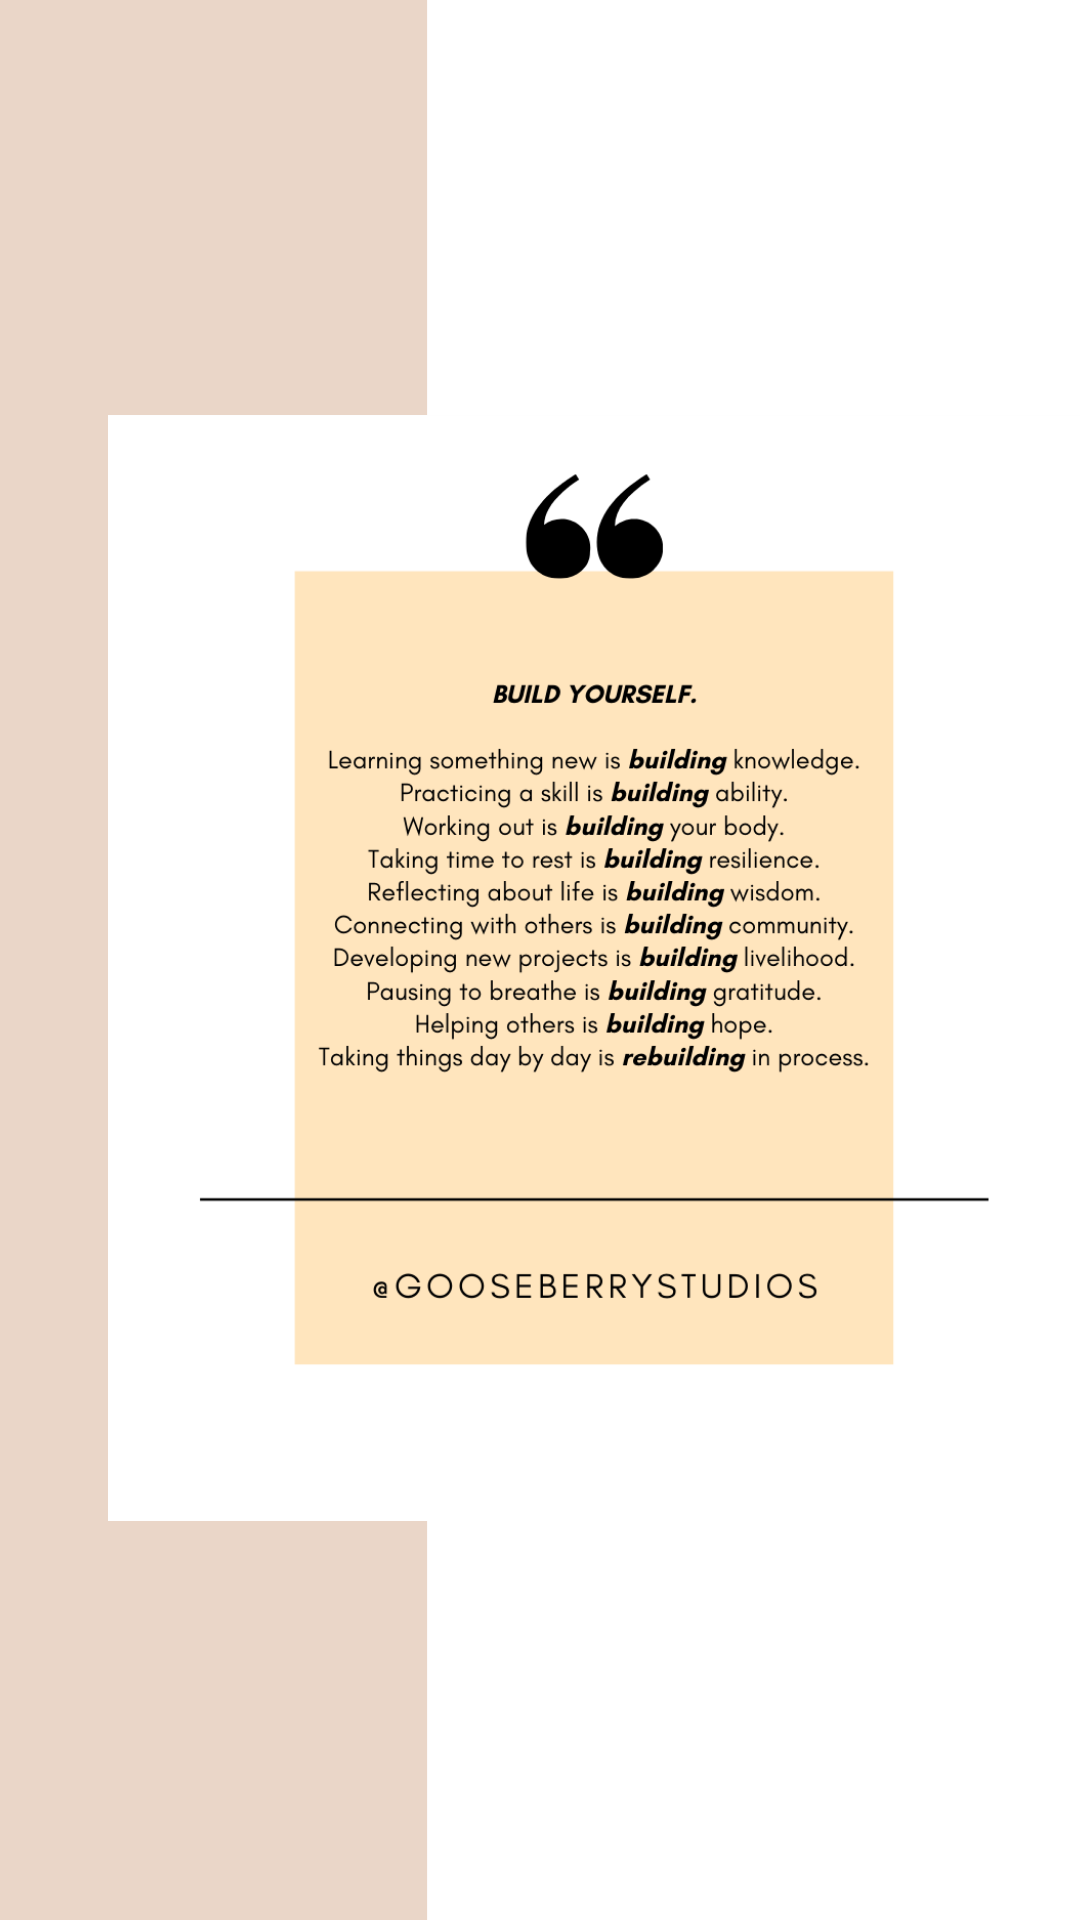 productivity tips gooseberry studios build yourself mindset